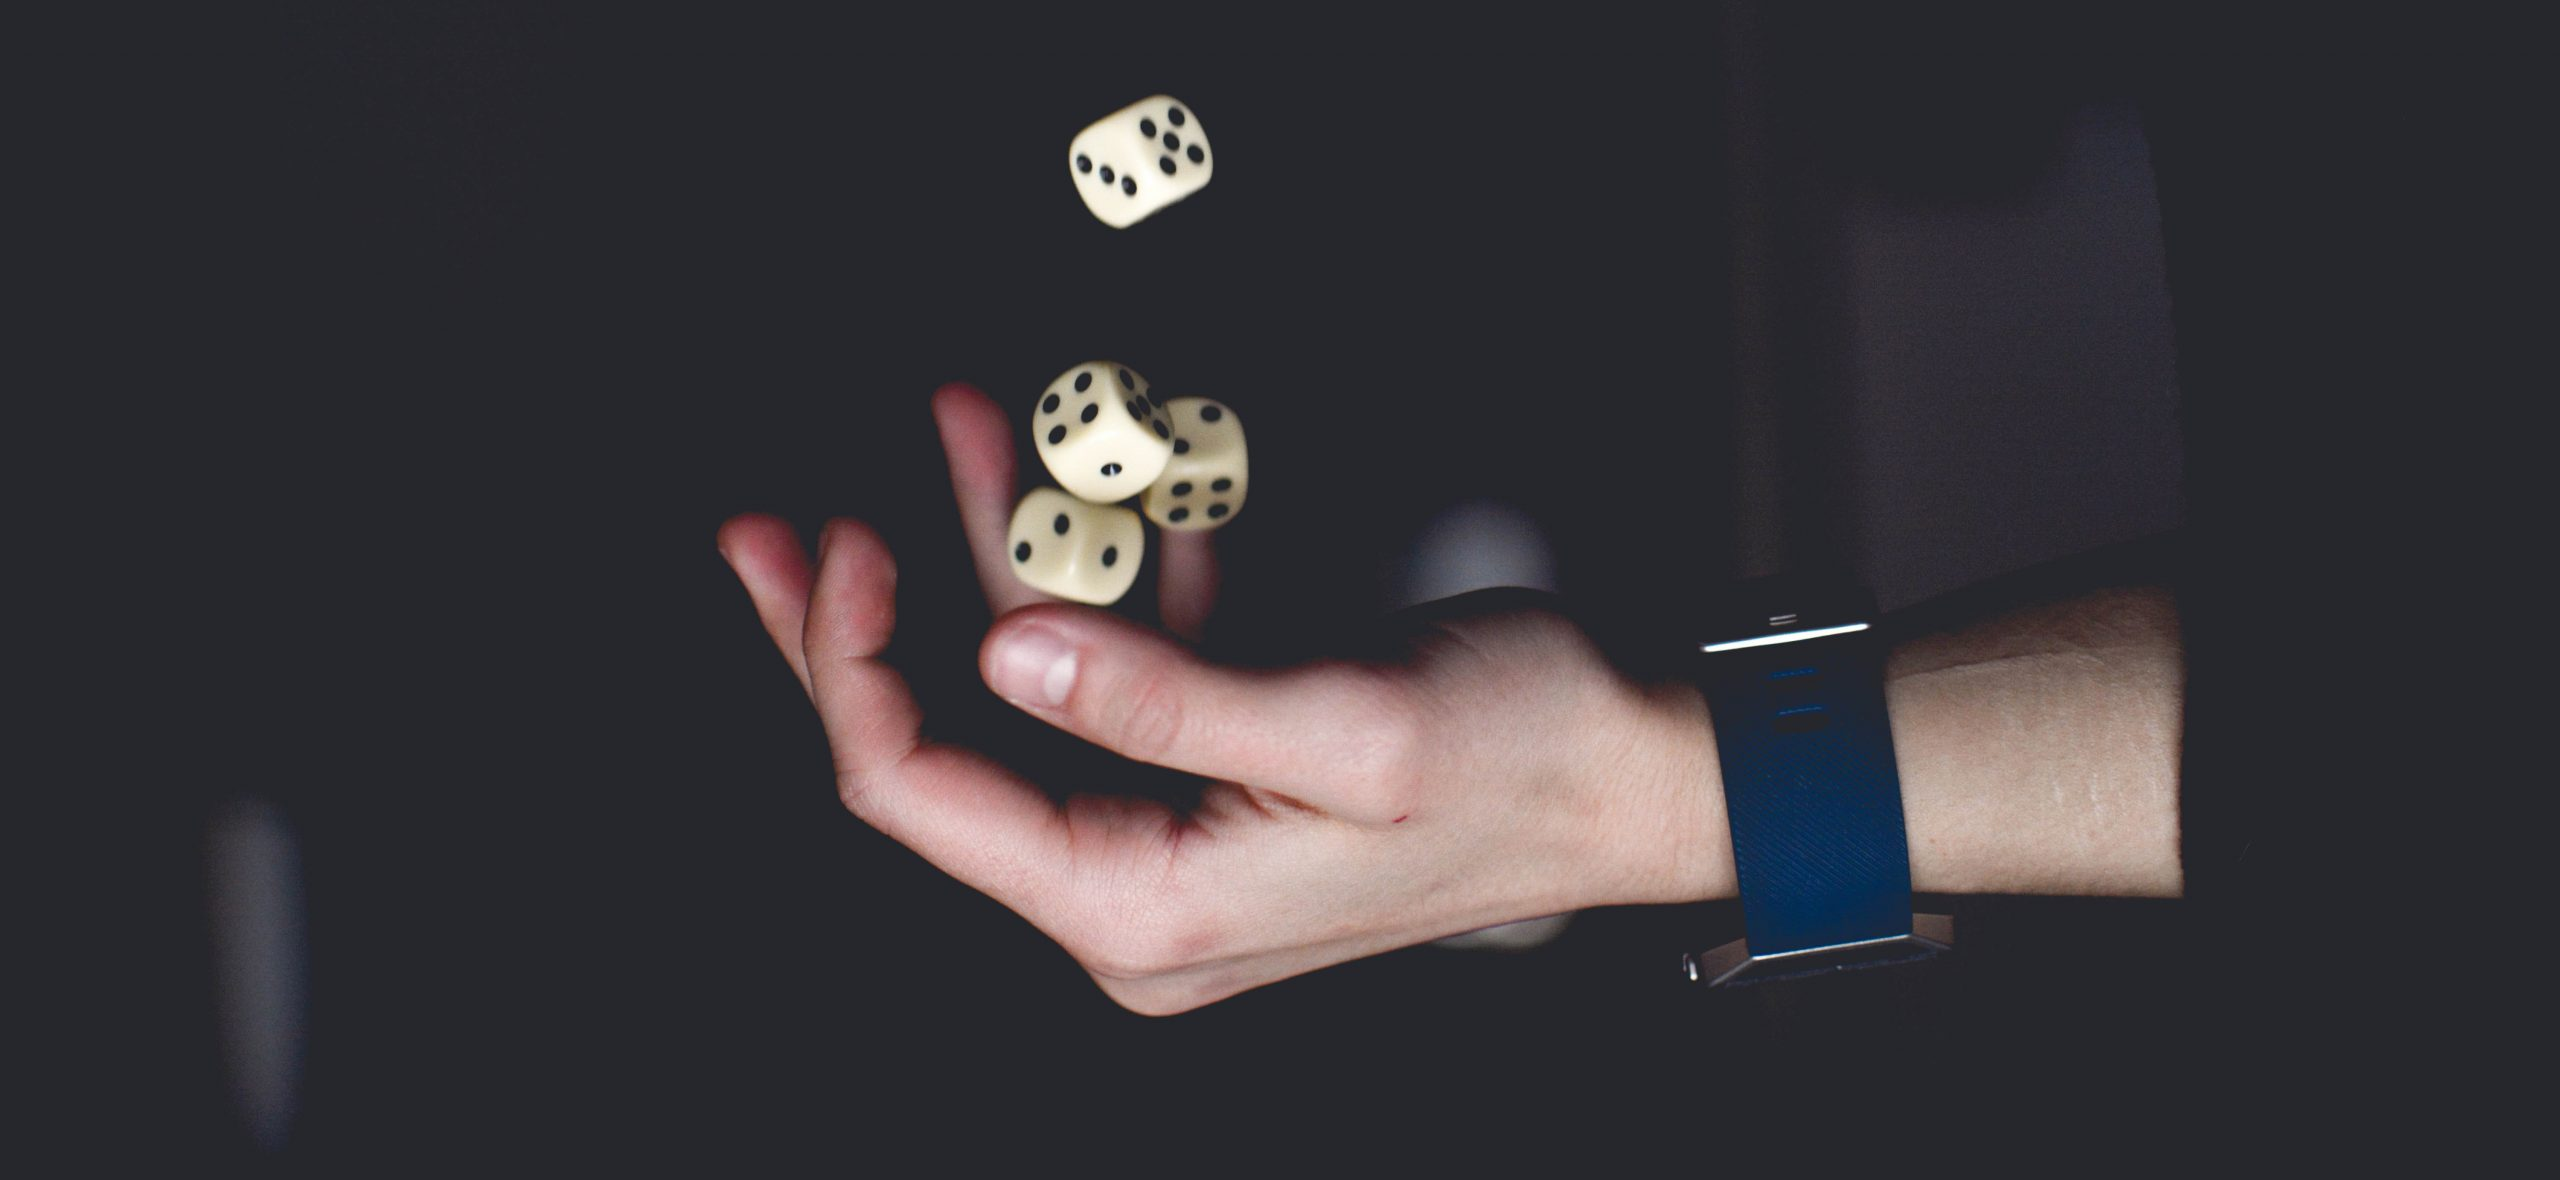 betFIRST Casino is the place to celebrate Dice Day